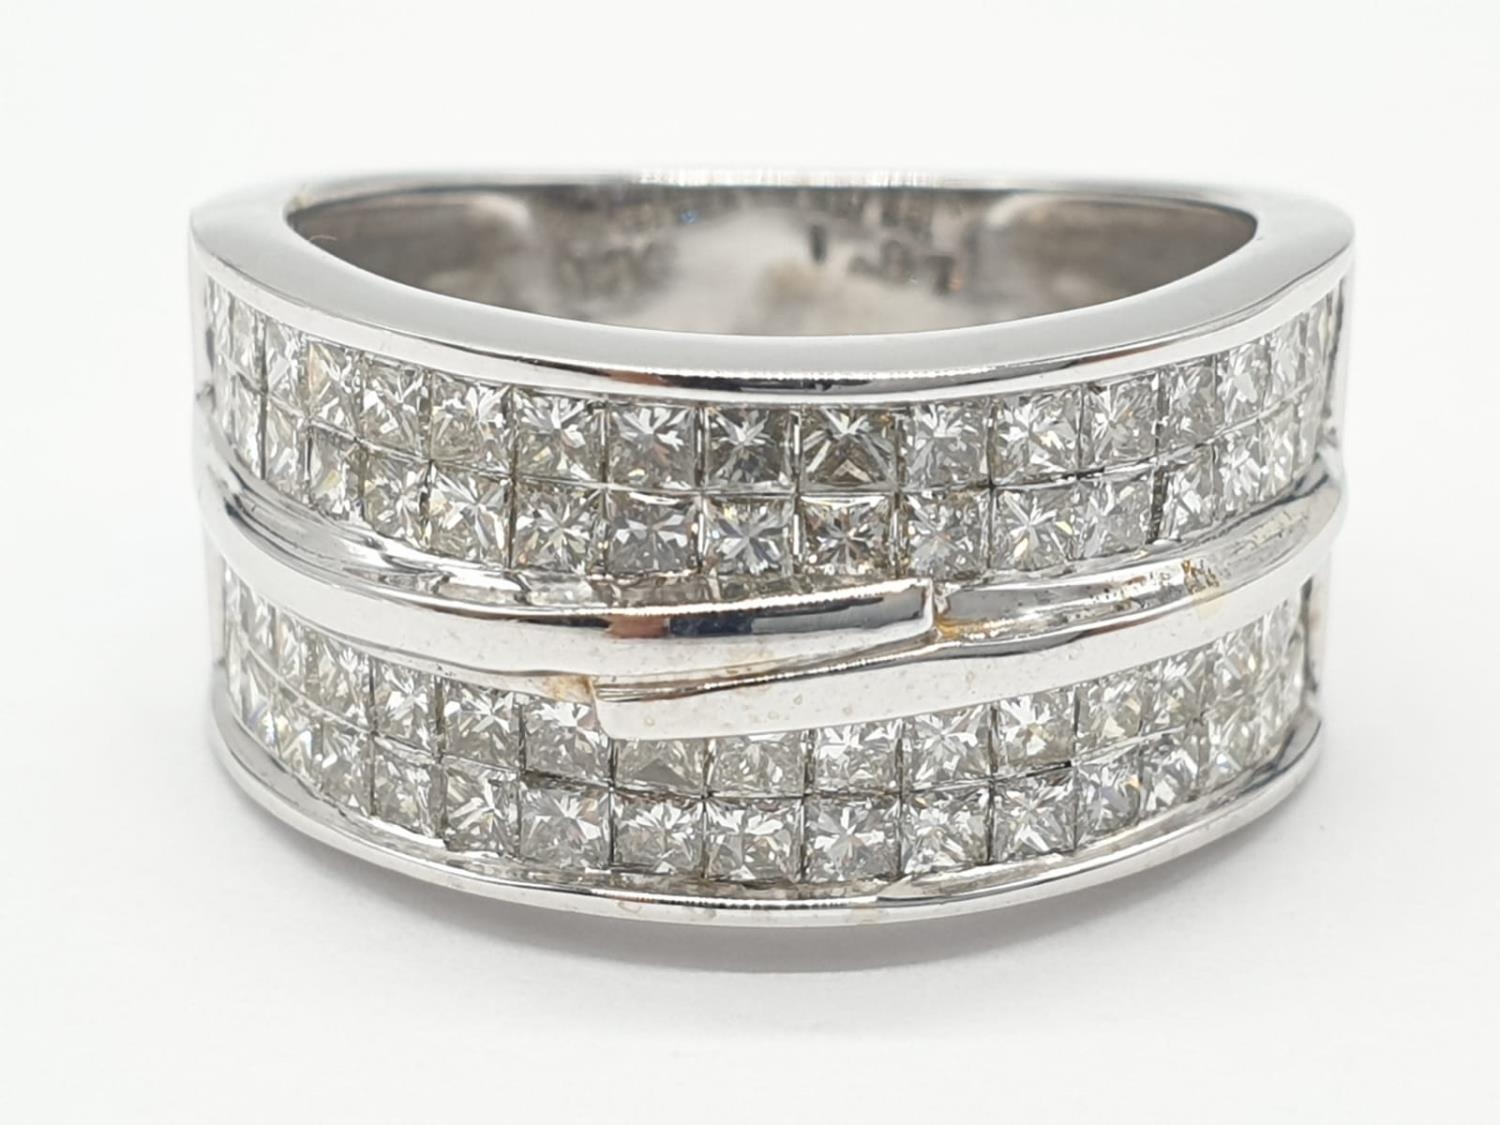 14ct white gold ring with 1.87ct diamonds. Size M and weighs 6.8g.